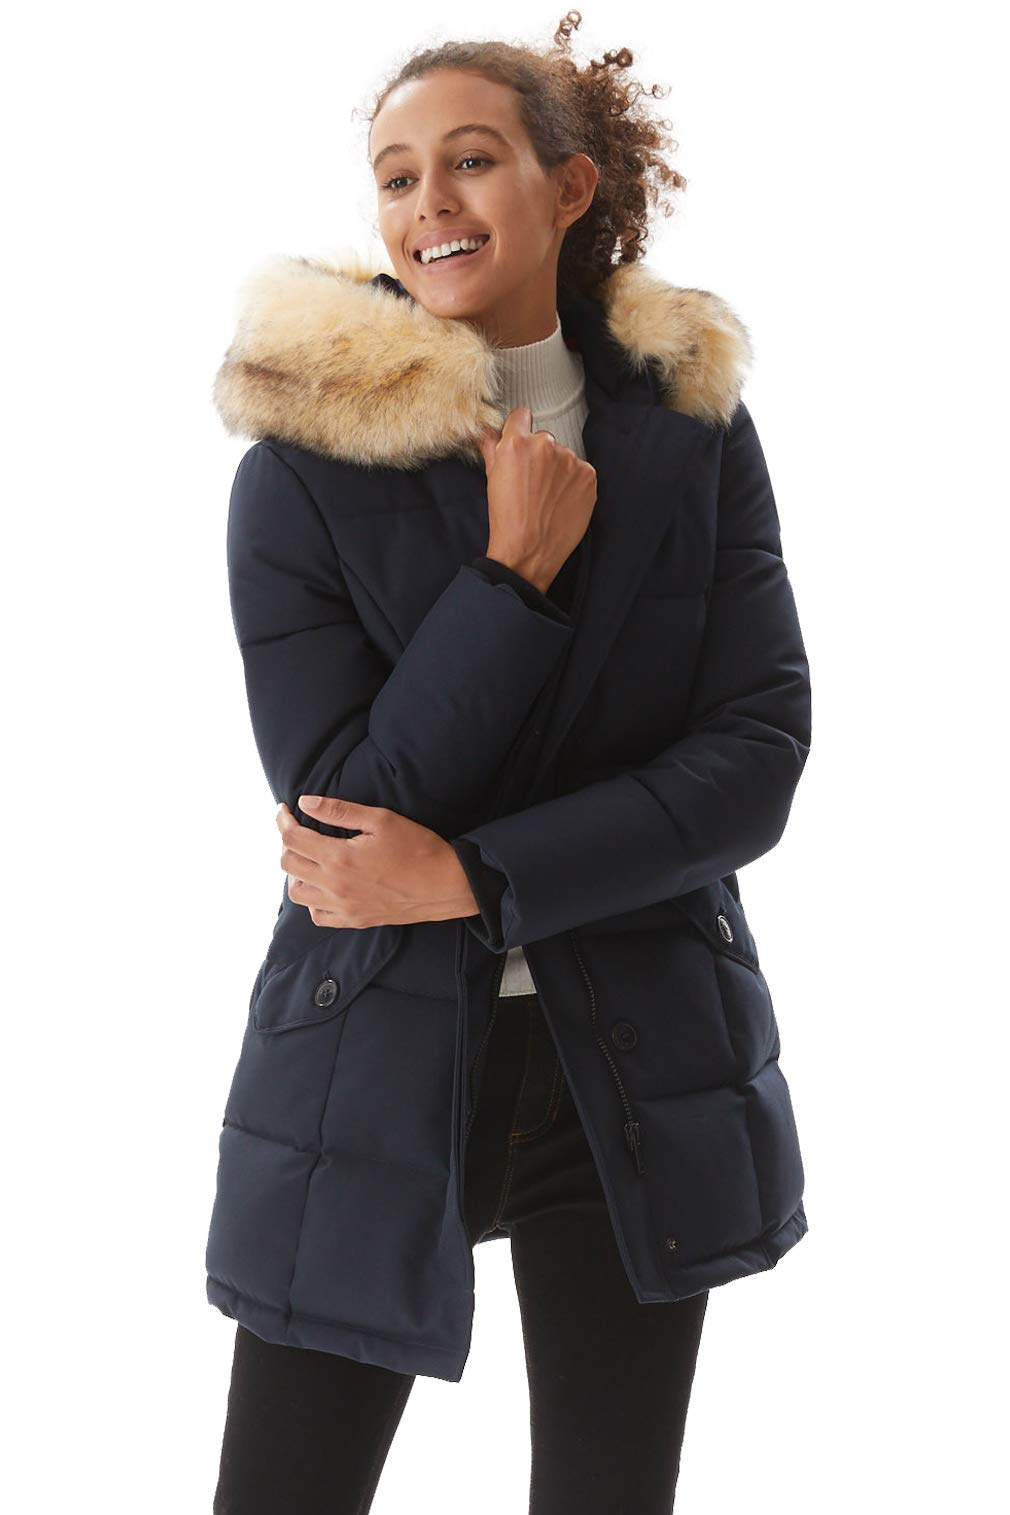 Molemsx Winter Coats for Women, Womens Outdoor Windproof Waterproof Ski Jacket Warm Puffer Coat Parka Jacket with Fur Trimmed Hood Shell Snowboarding Coats Navy XX-Large by Molemsx